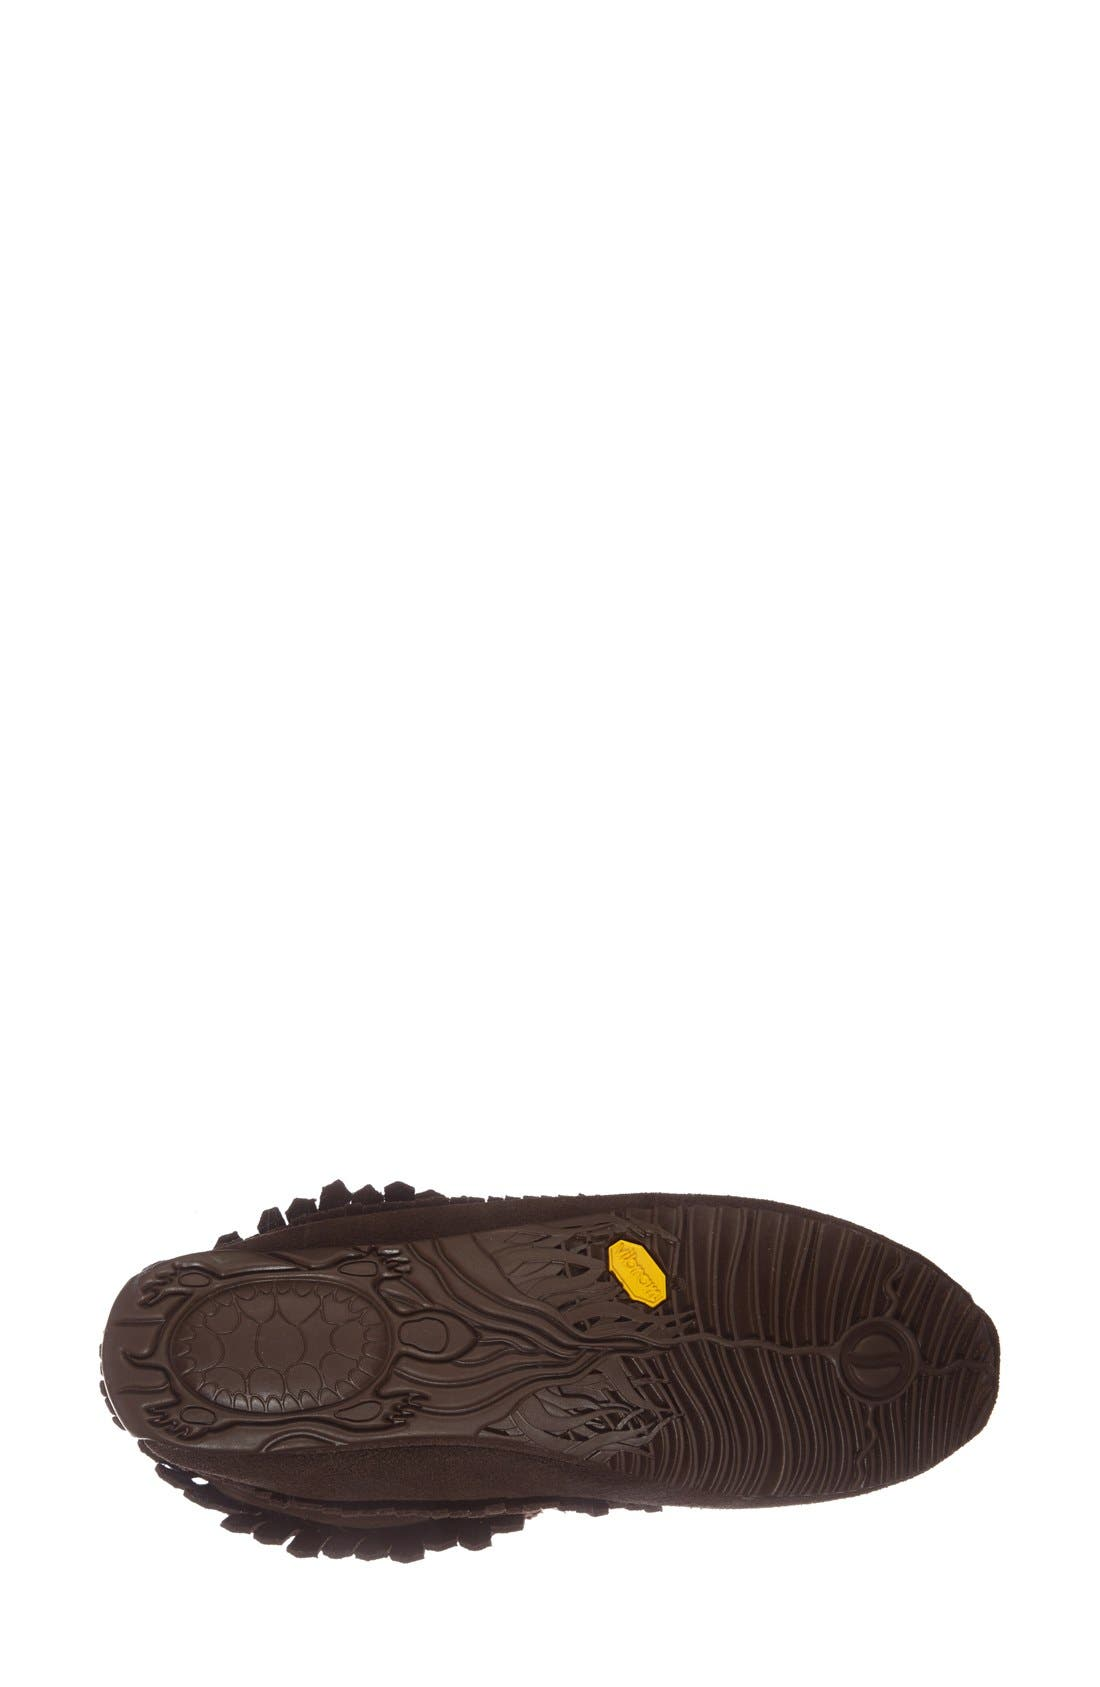 'Harvester' Moccasin,                             Alternate thumbnail 4, color,                             Chocolate